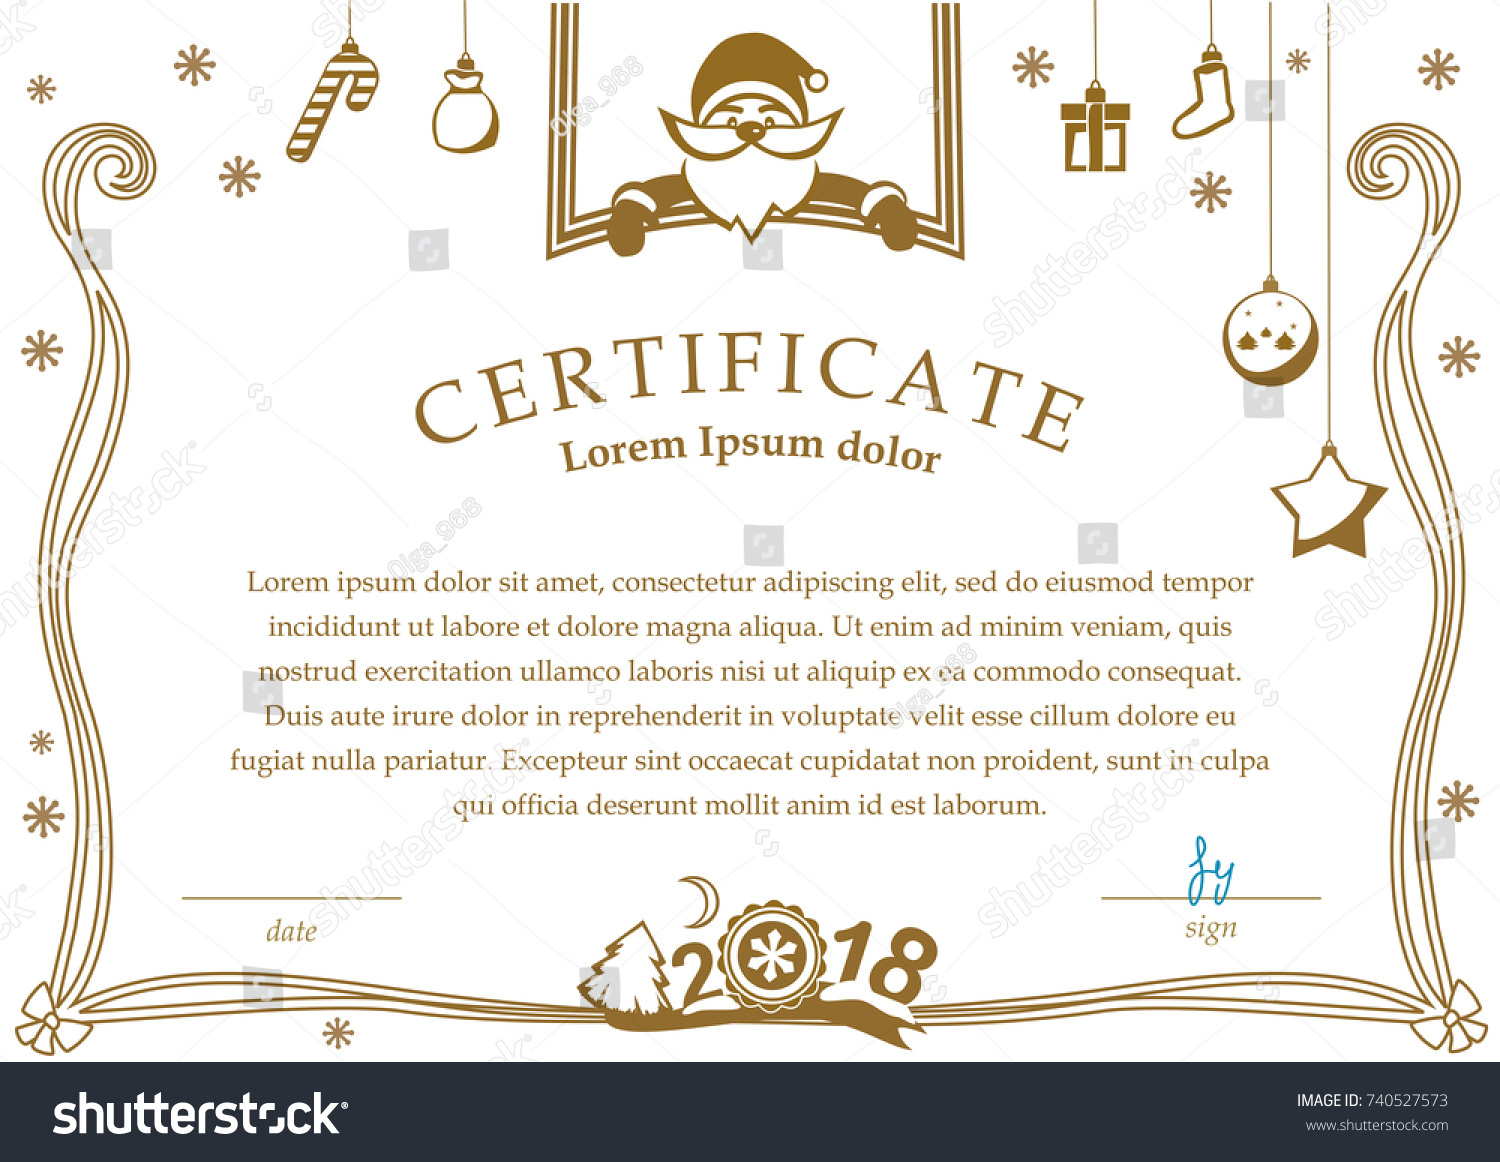 Christmas Certificate Santa Christmas Decorations On Stock Vector